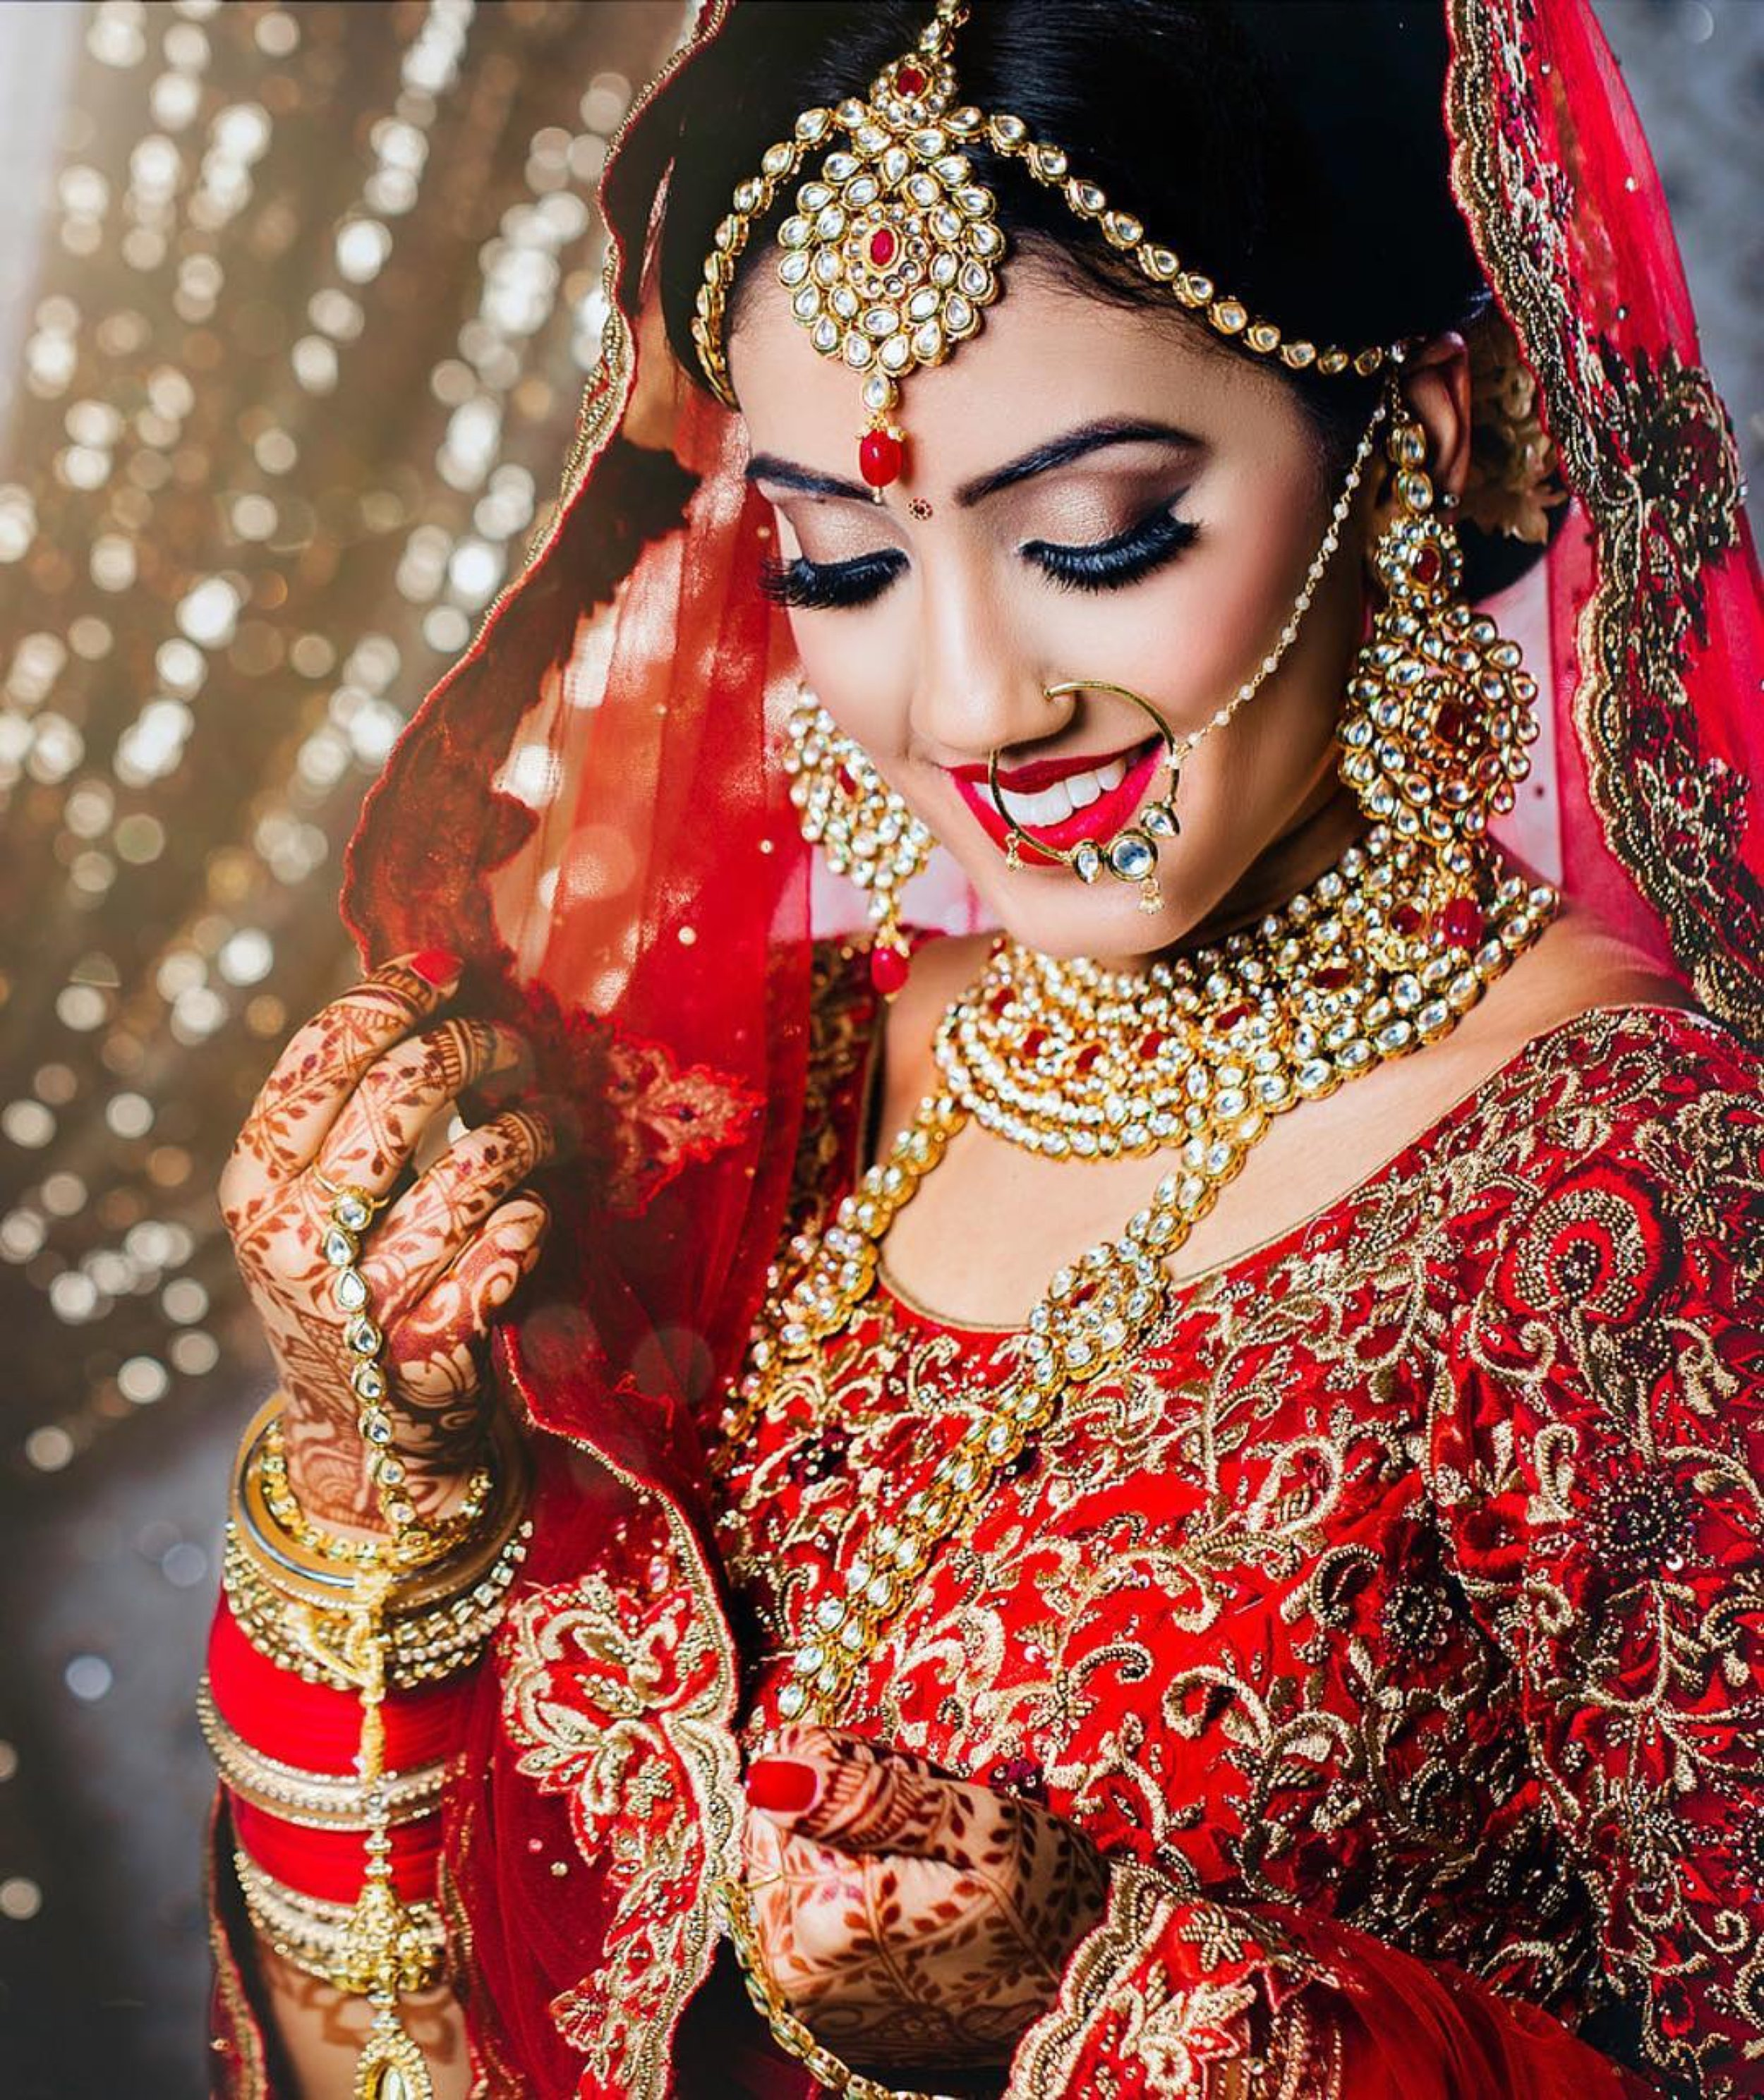 Our Beautiful Bride Jasnique looking absolutely stunning #queened. Makeup & Hair: Kelly K. Photography: @Studio12movies, Flowers: @sukisflowers, & Jewellery: @chohans_jewellery